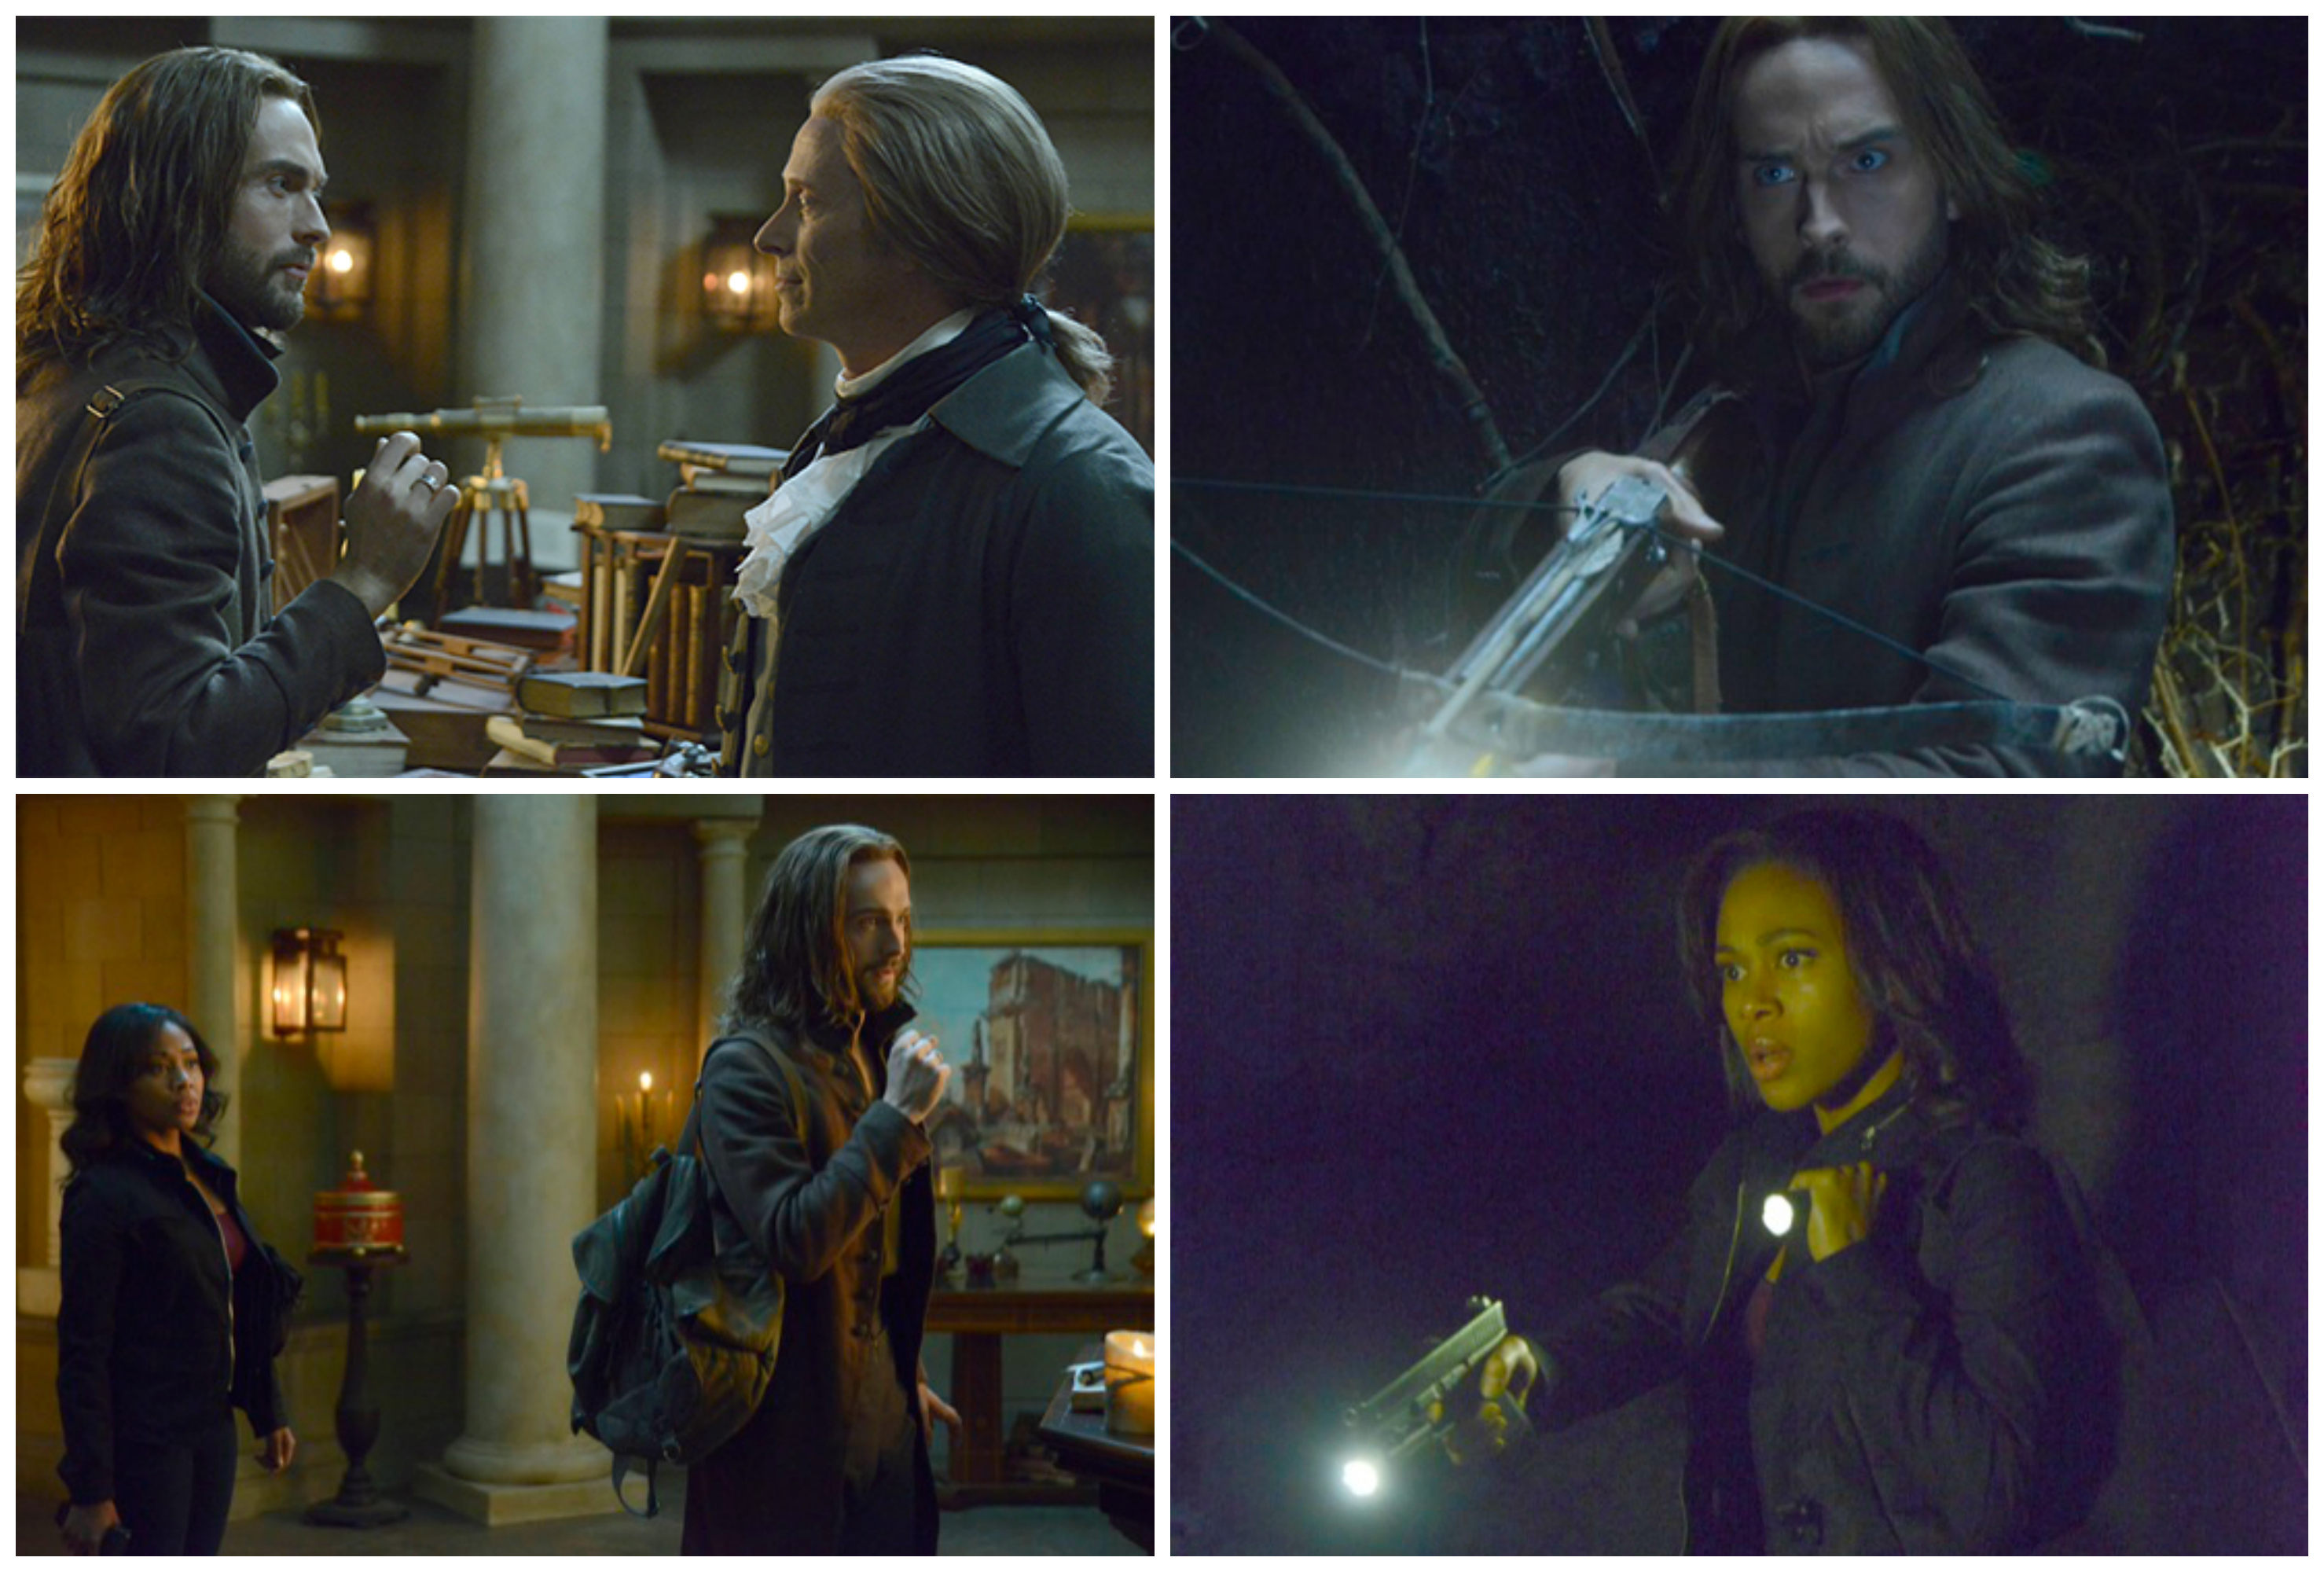 Episode 179: Sleepy Hollow - S2E16 - What Lies Beneath